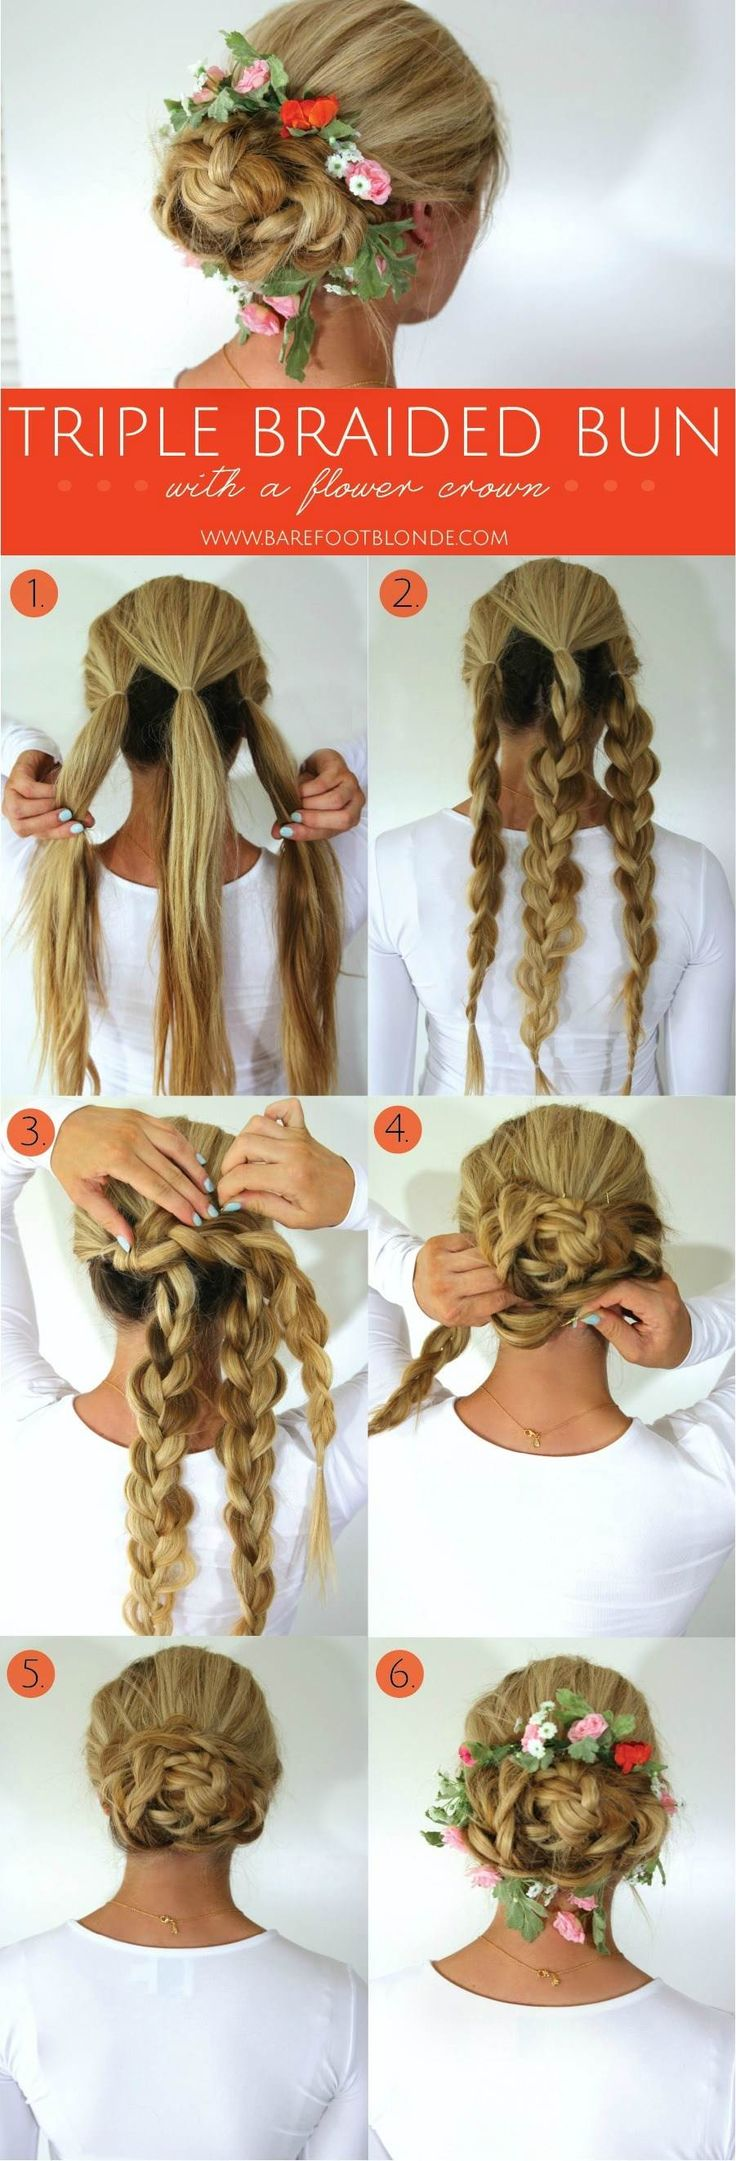 10 Of The Best Braided Hairstyles...